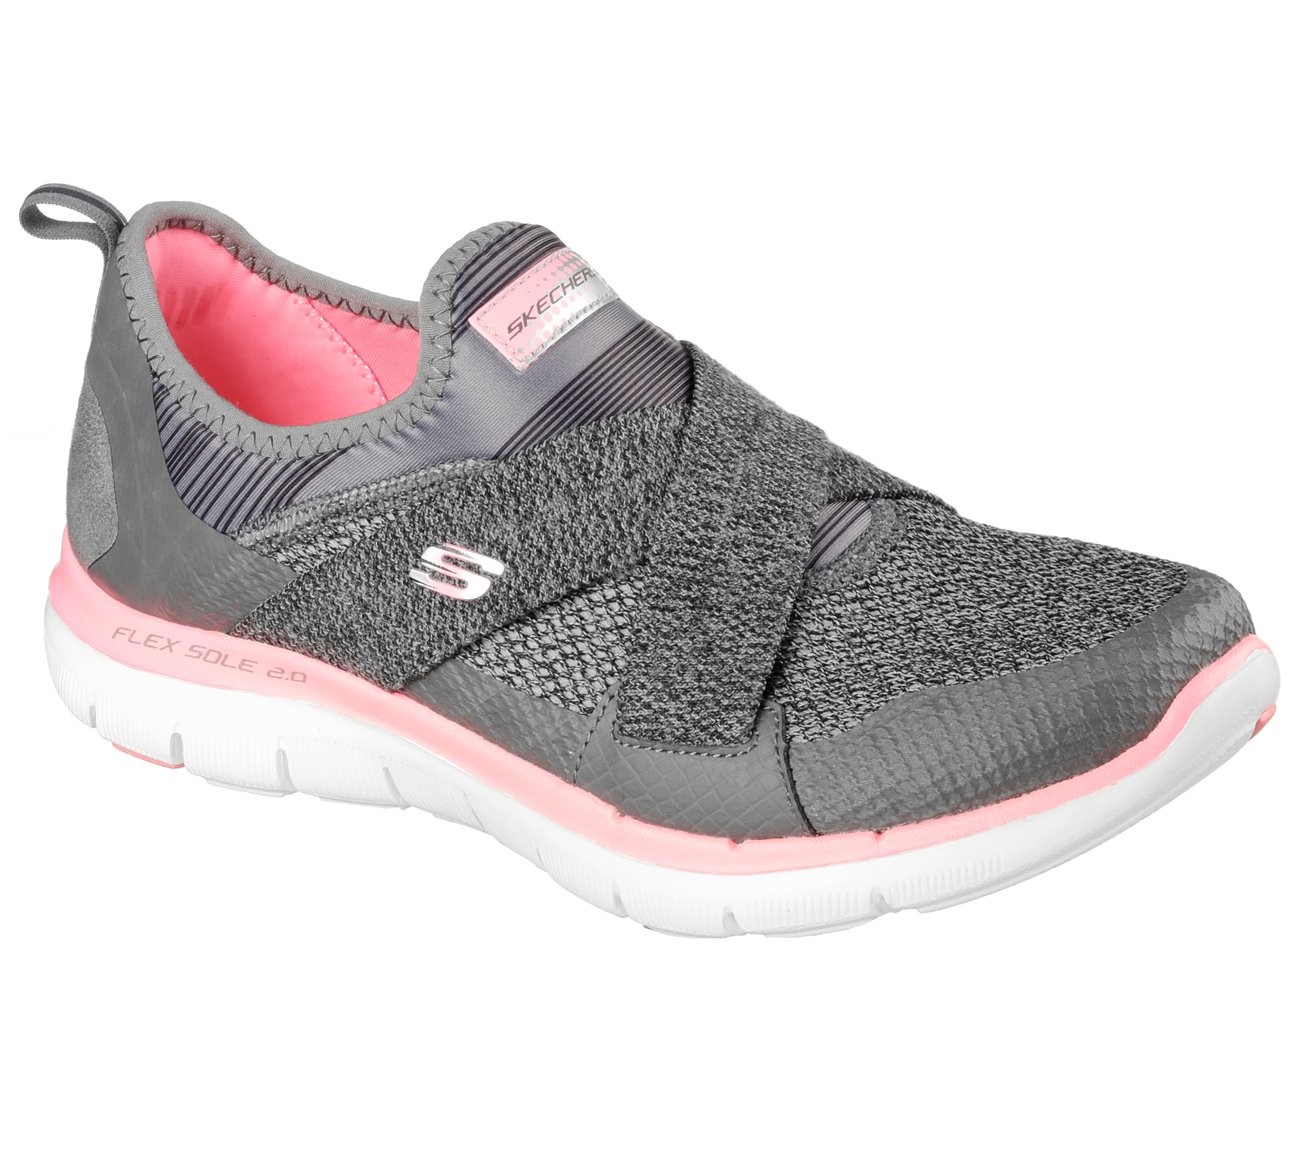 Skechers Women's Flex Appeal New Image Sneaker B01EOUWBOY 5.5 W US|Charcoal/Coral